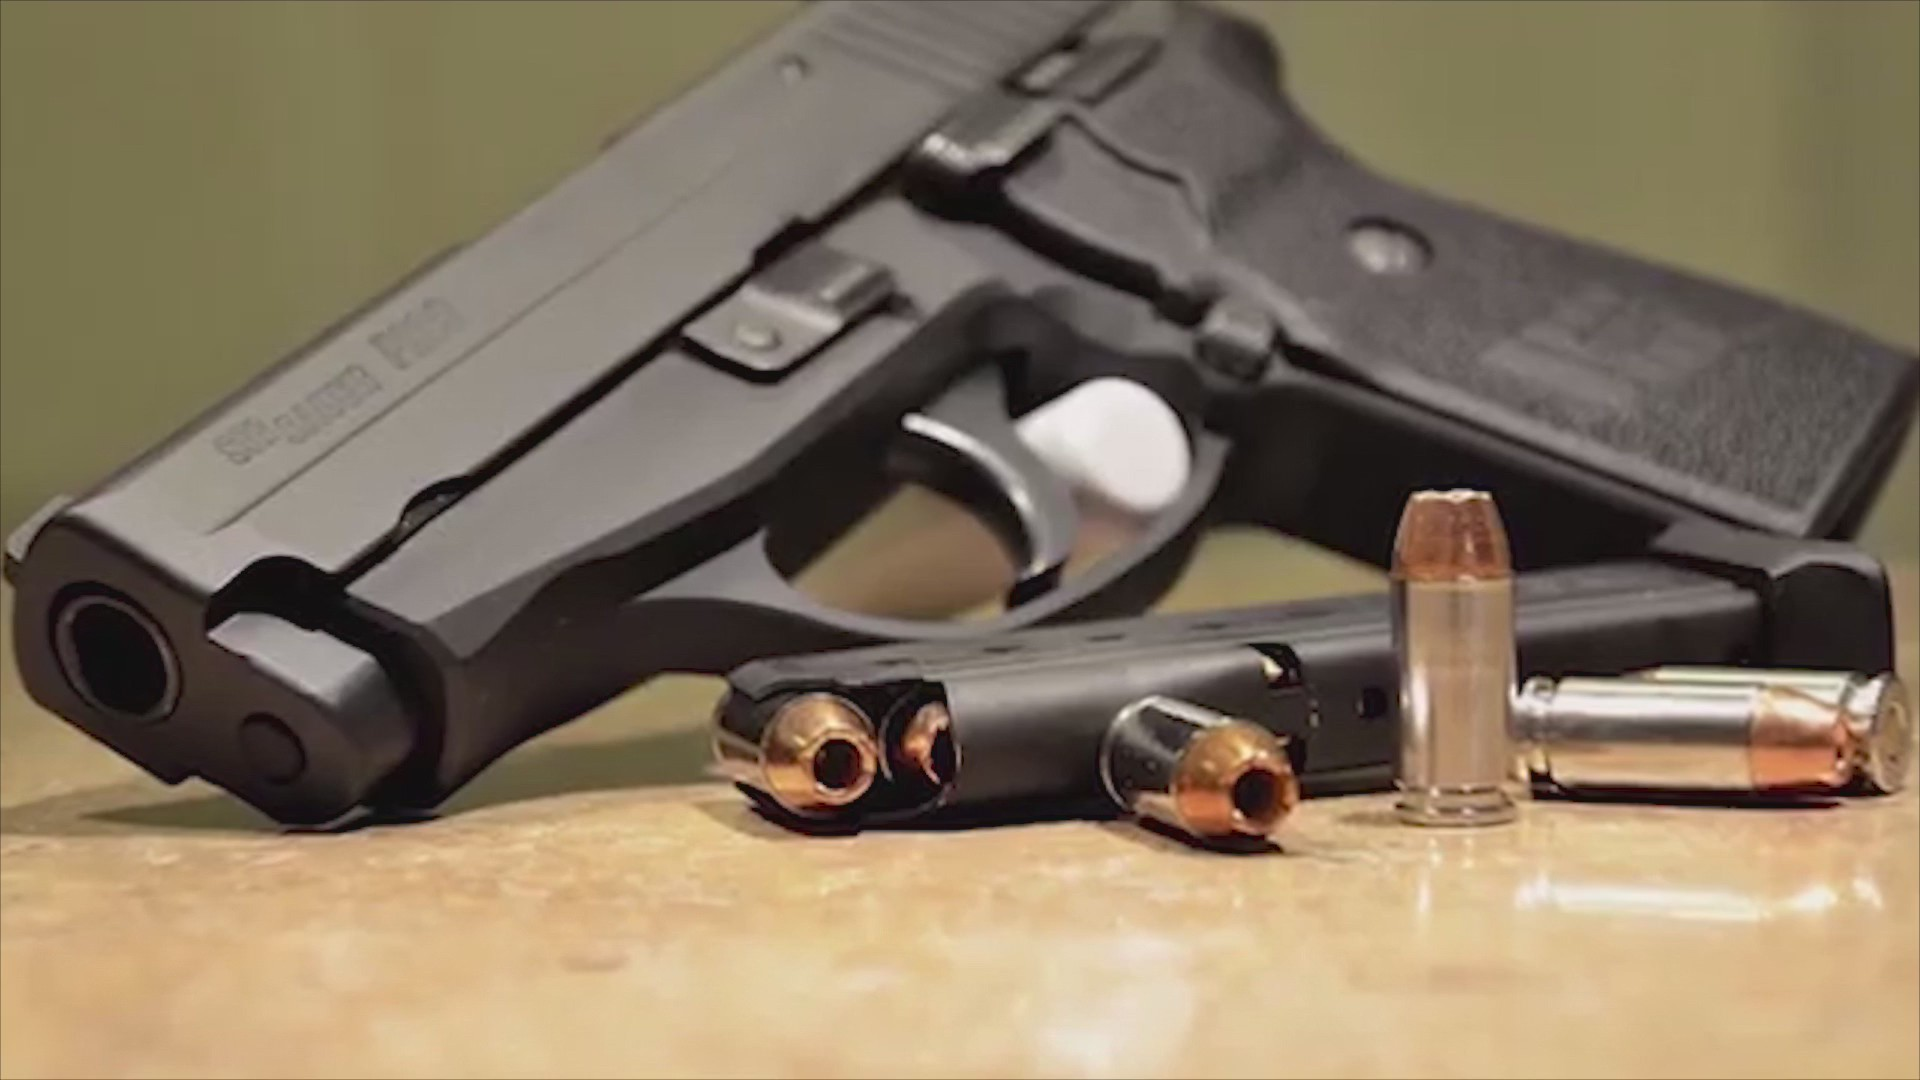 Officials_share_safety_tips_to_keep_guns_0_20190410231815